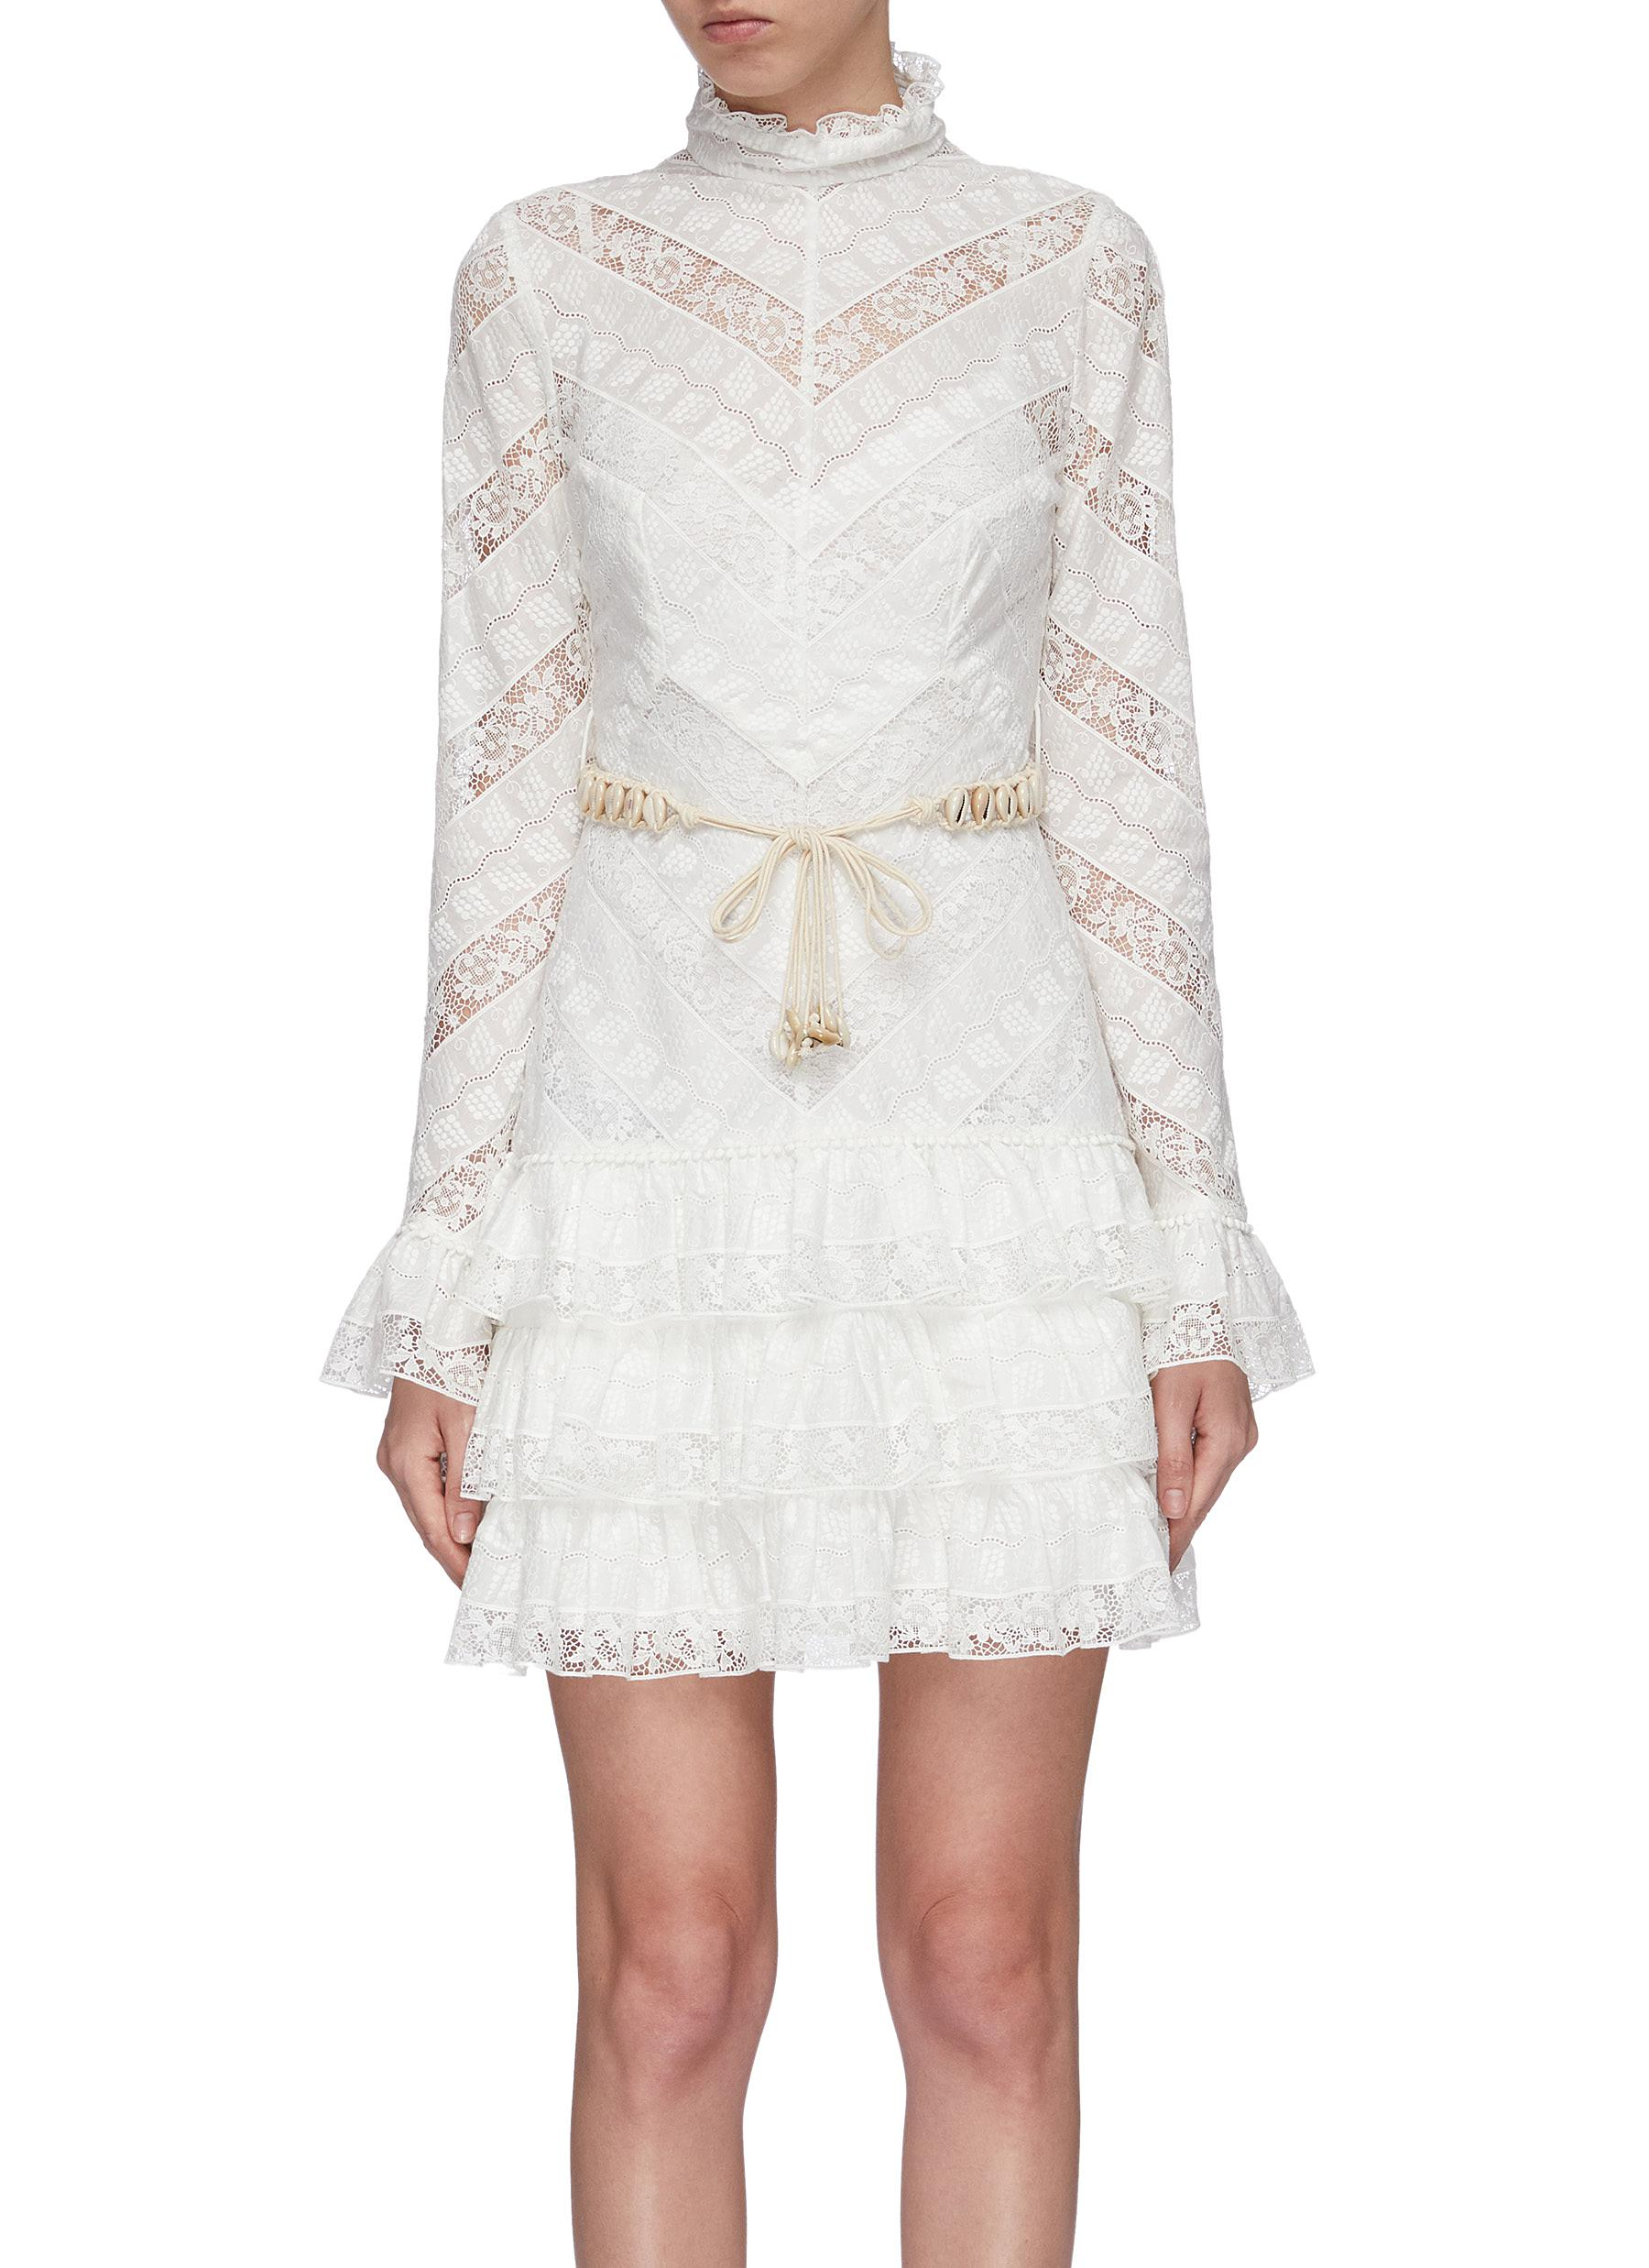 Veneto Perennial chevron lace panel ruffle tiered dress by Zimmermann